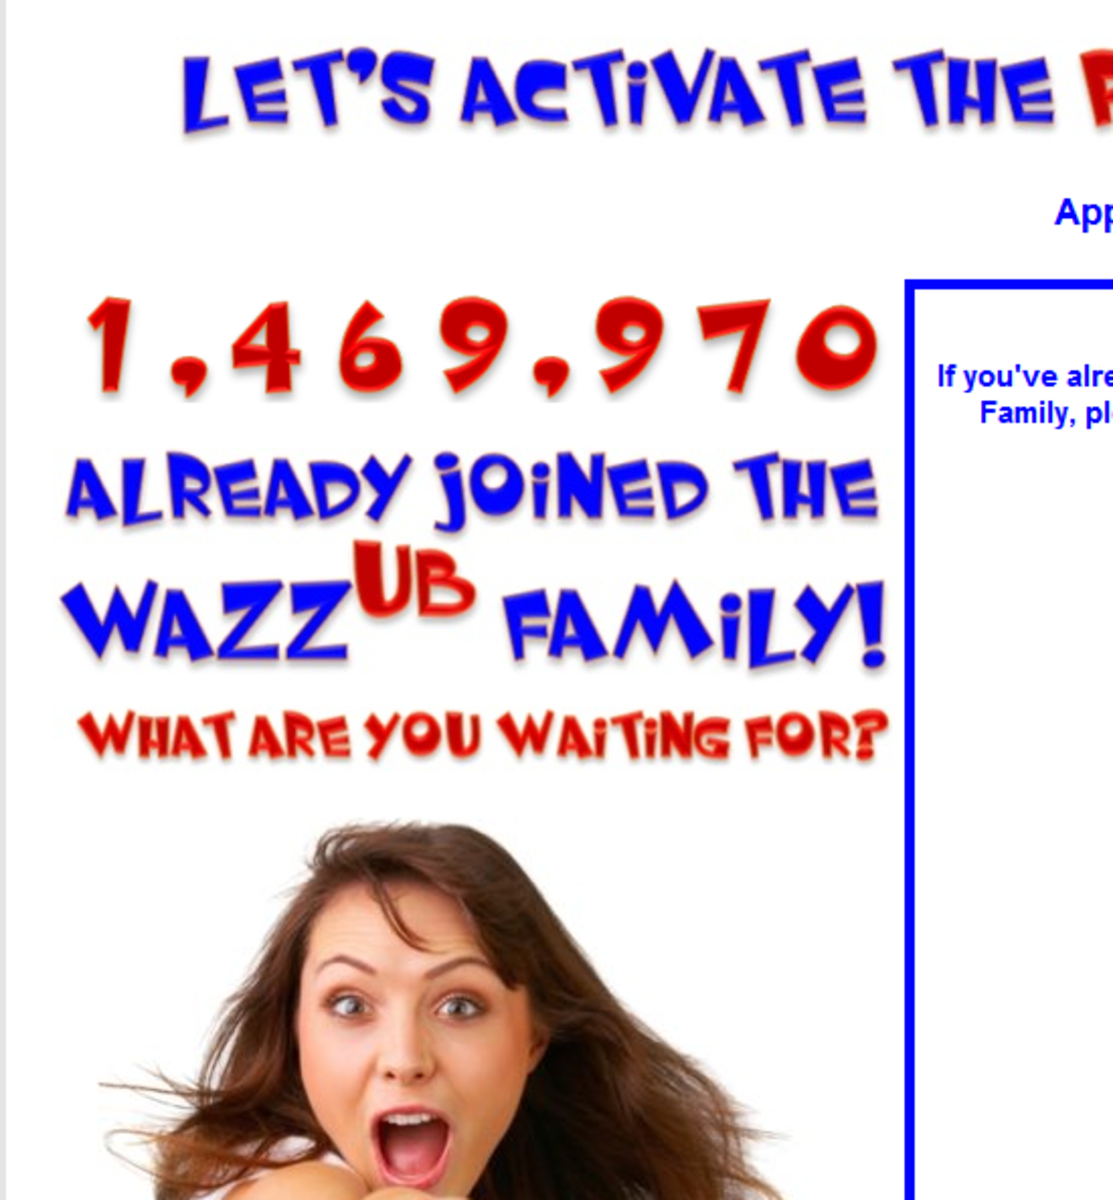 """""""X already joined the Wazzub Family"""", except X is a javascript counter, not a real membership counter"""